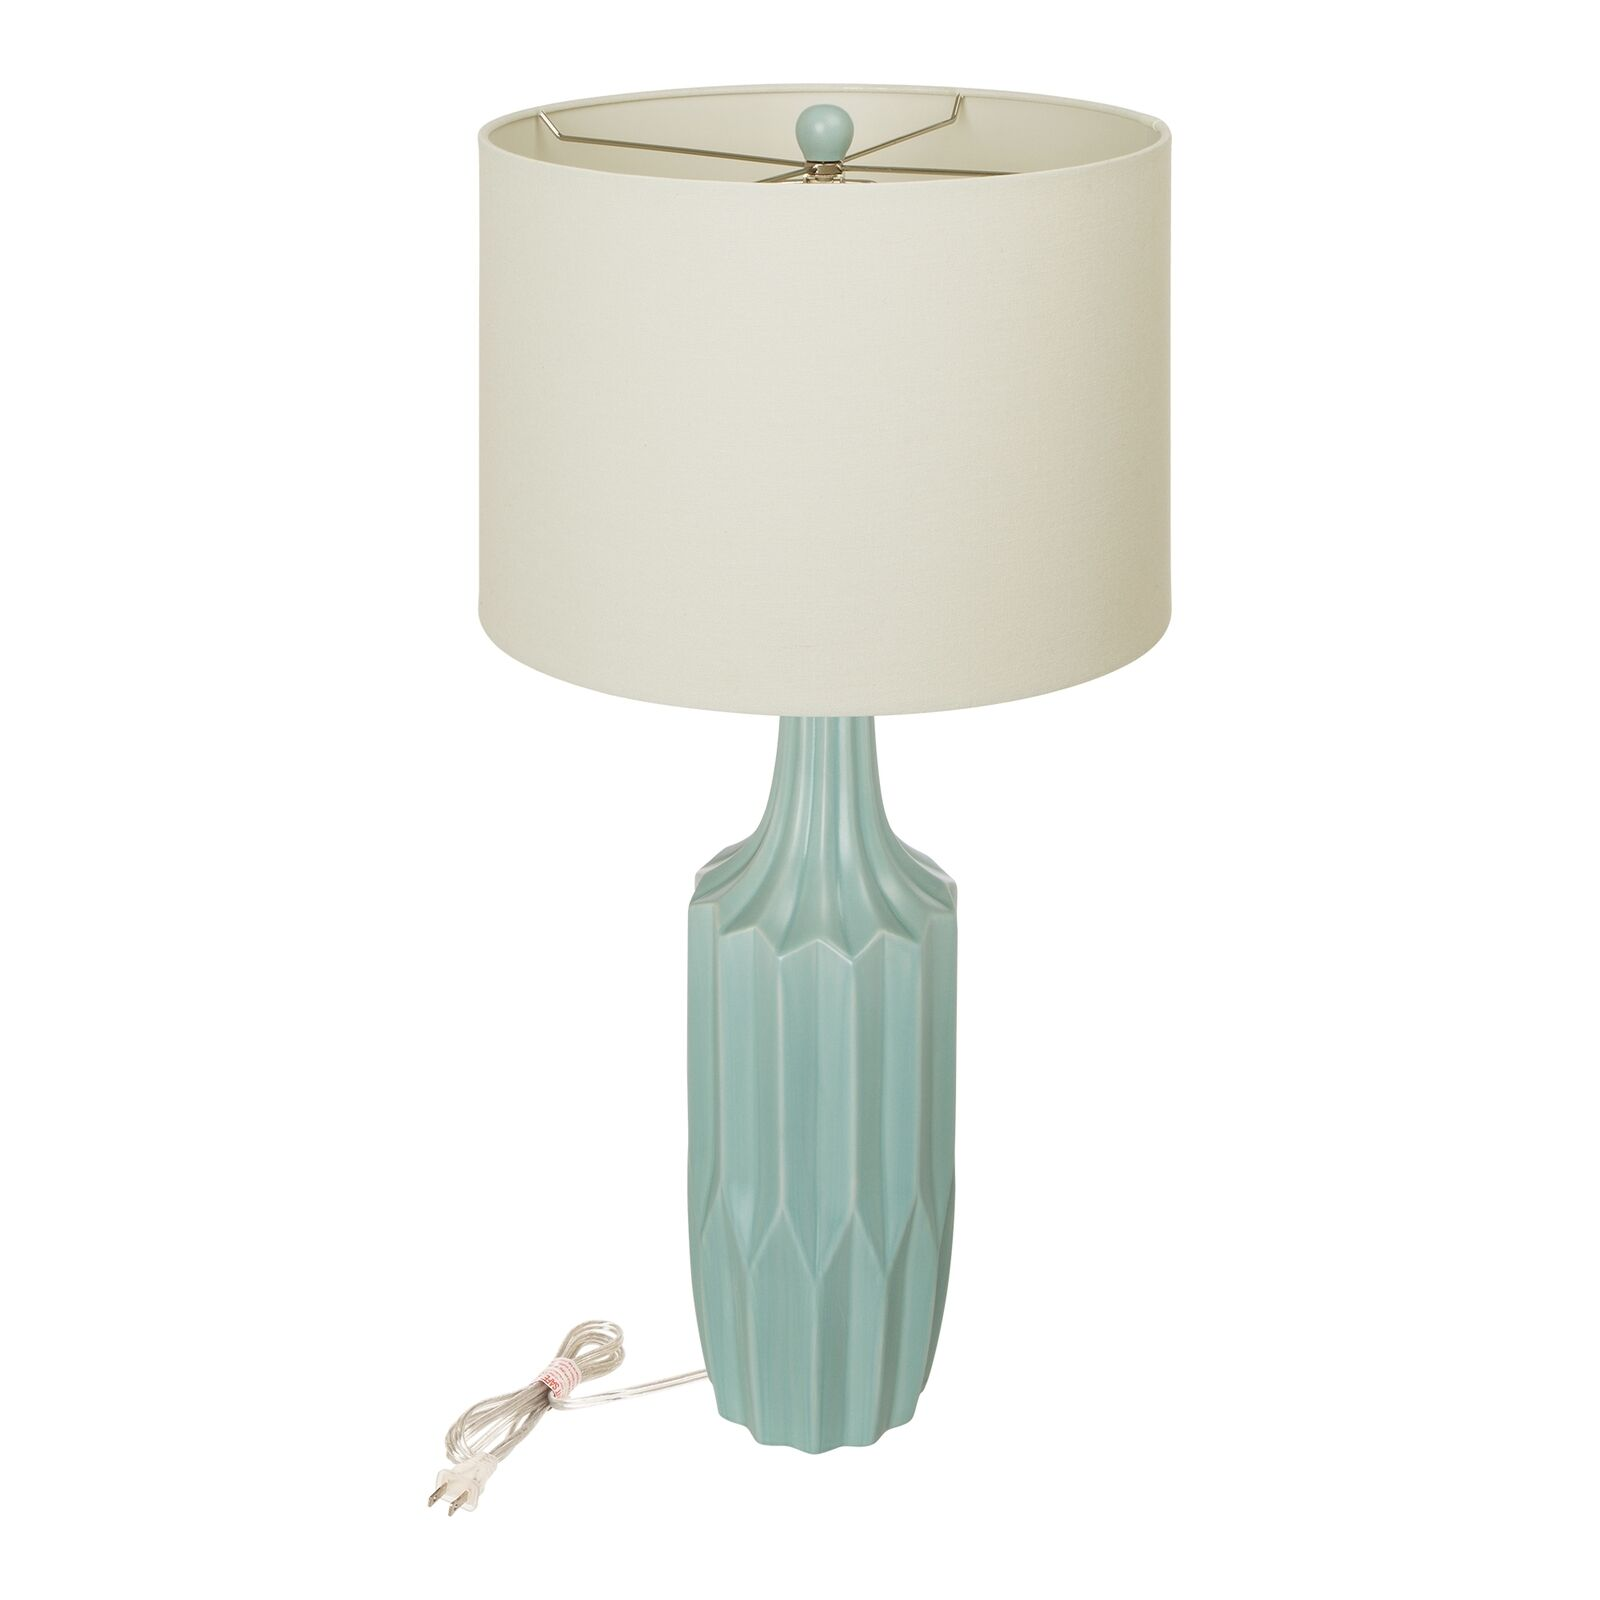 Details about Glitzhome Modern Accent Desk Lighting Ceramic Table Lamp  Bedside Bedroom Decor